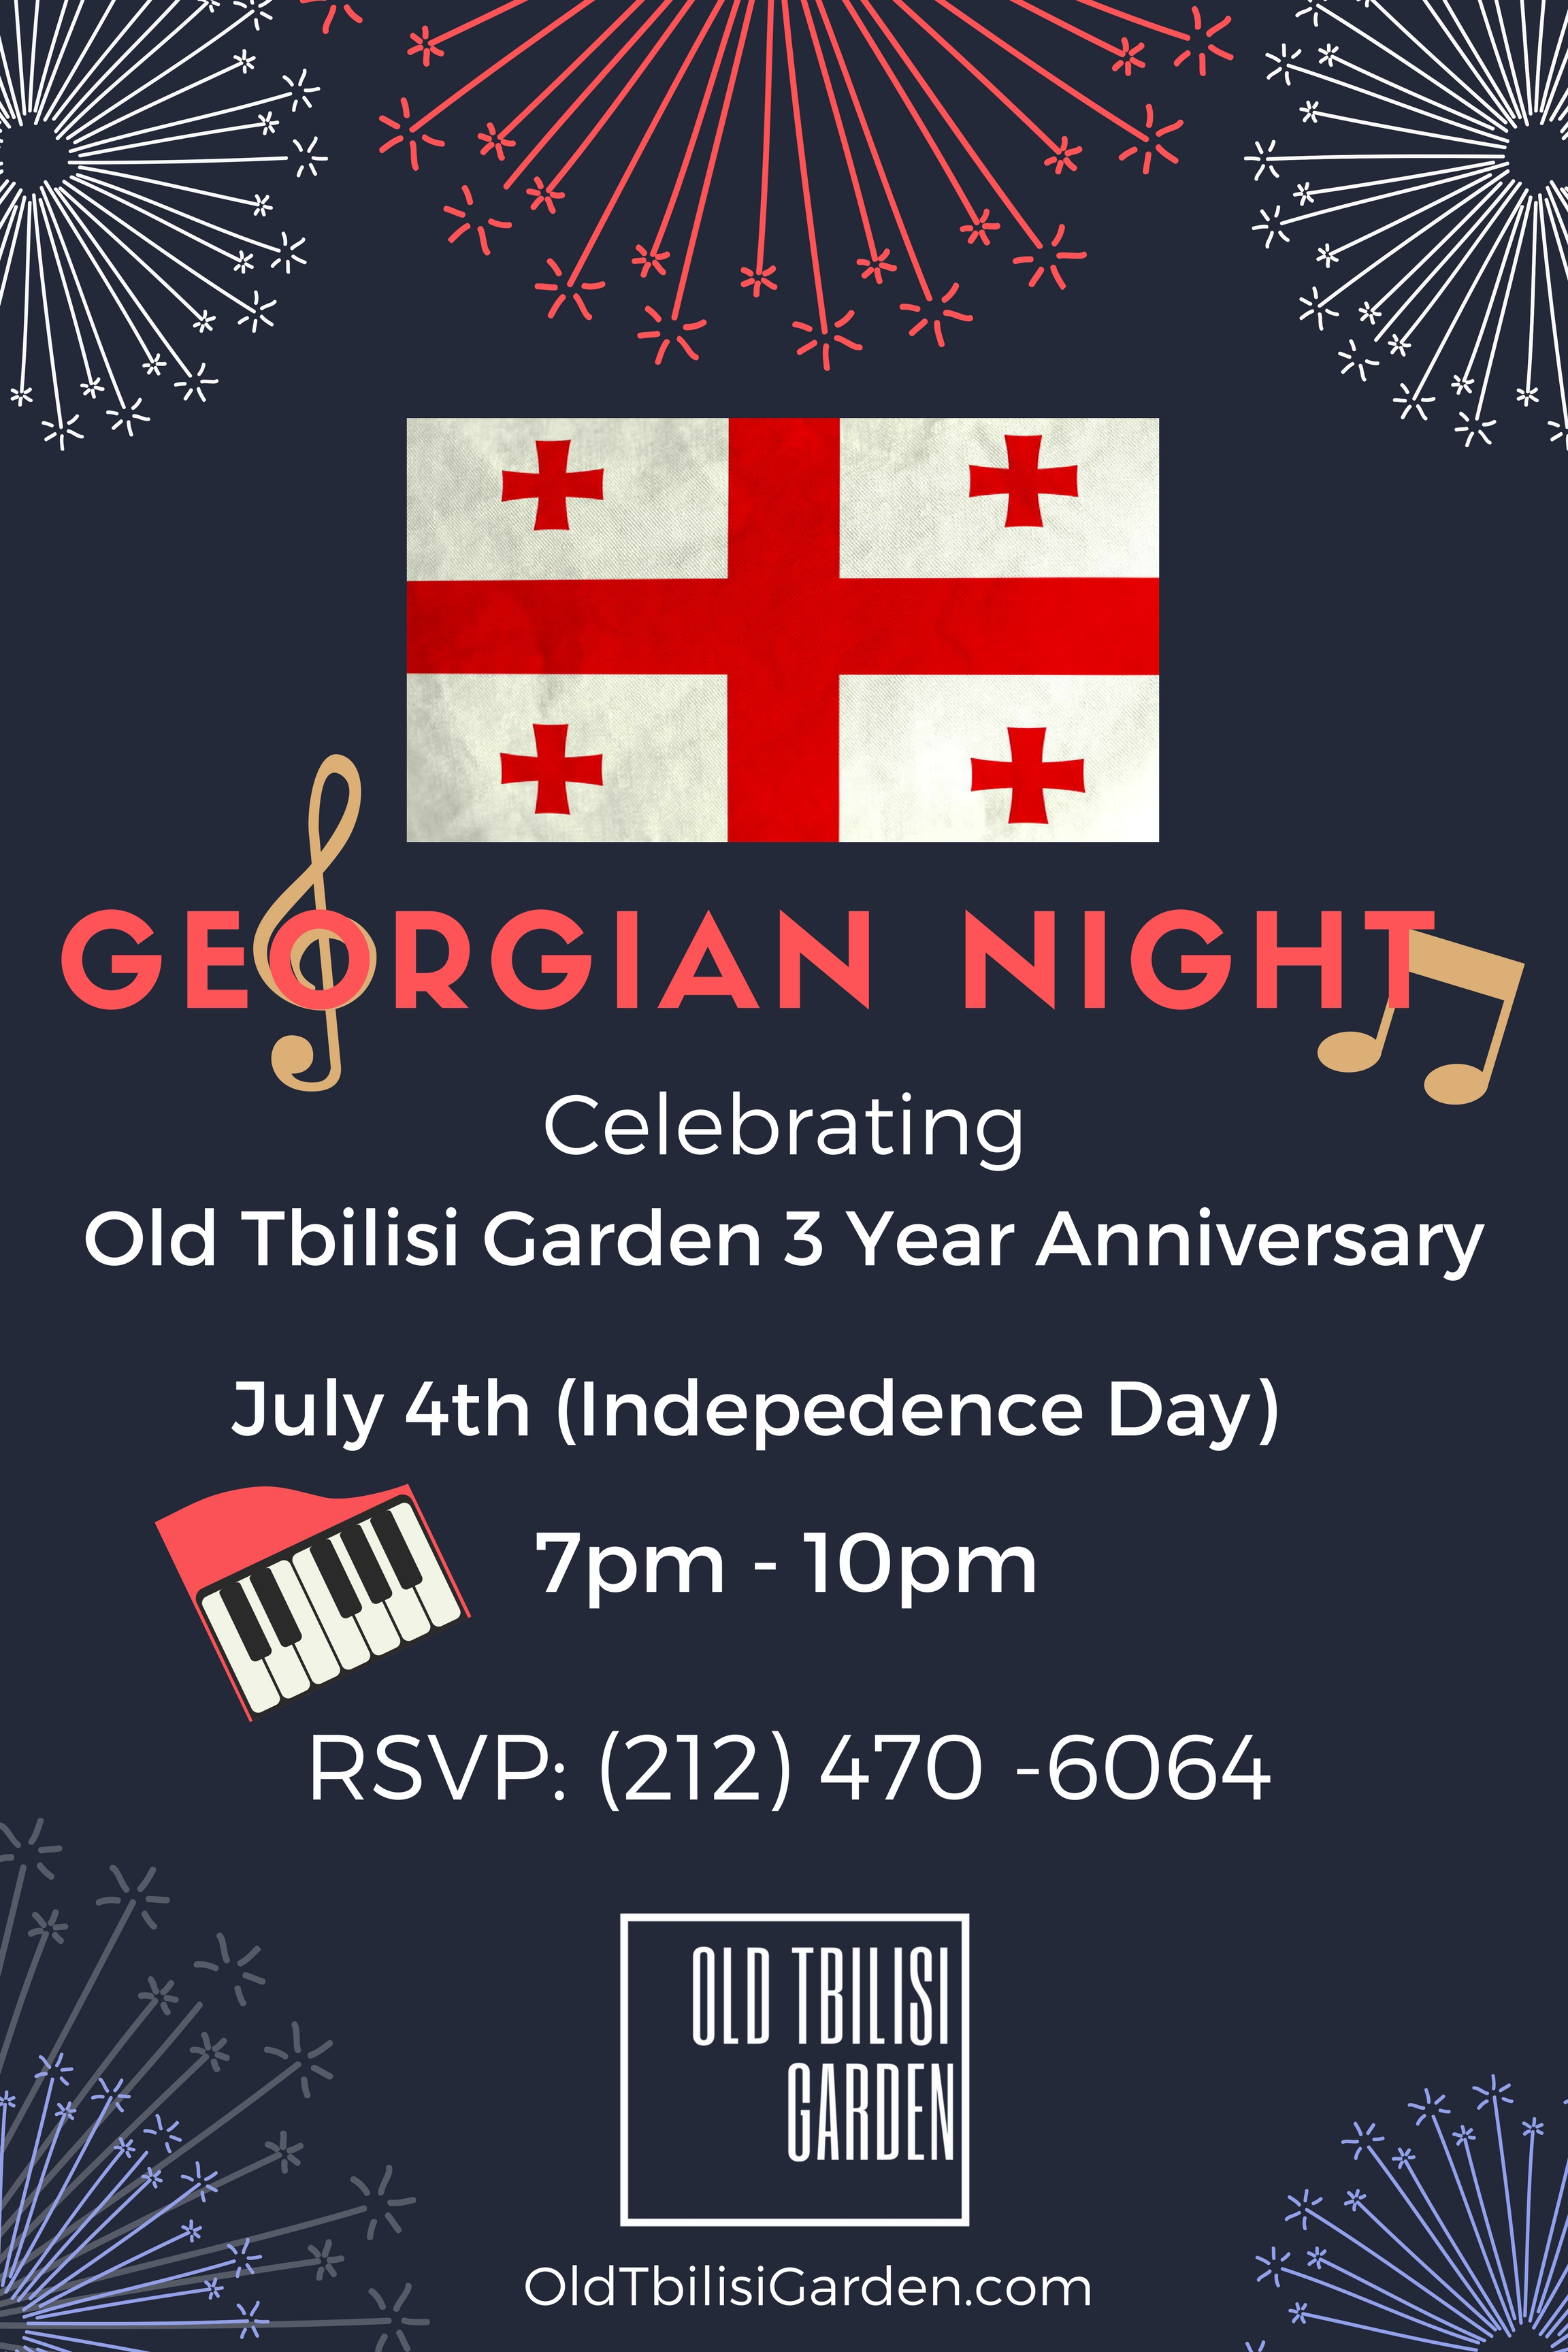 Georgian Night (07/04/2017)7pm-10pm - Old Tbilisi Garden is three year-old on the day of July 4th Indepence day! We celebrate with amazing Georgian House band with great Georgian food.Thanks for everyone who joins us for this amazing night.